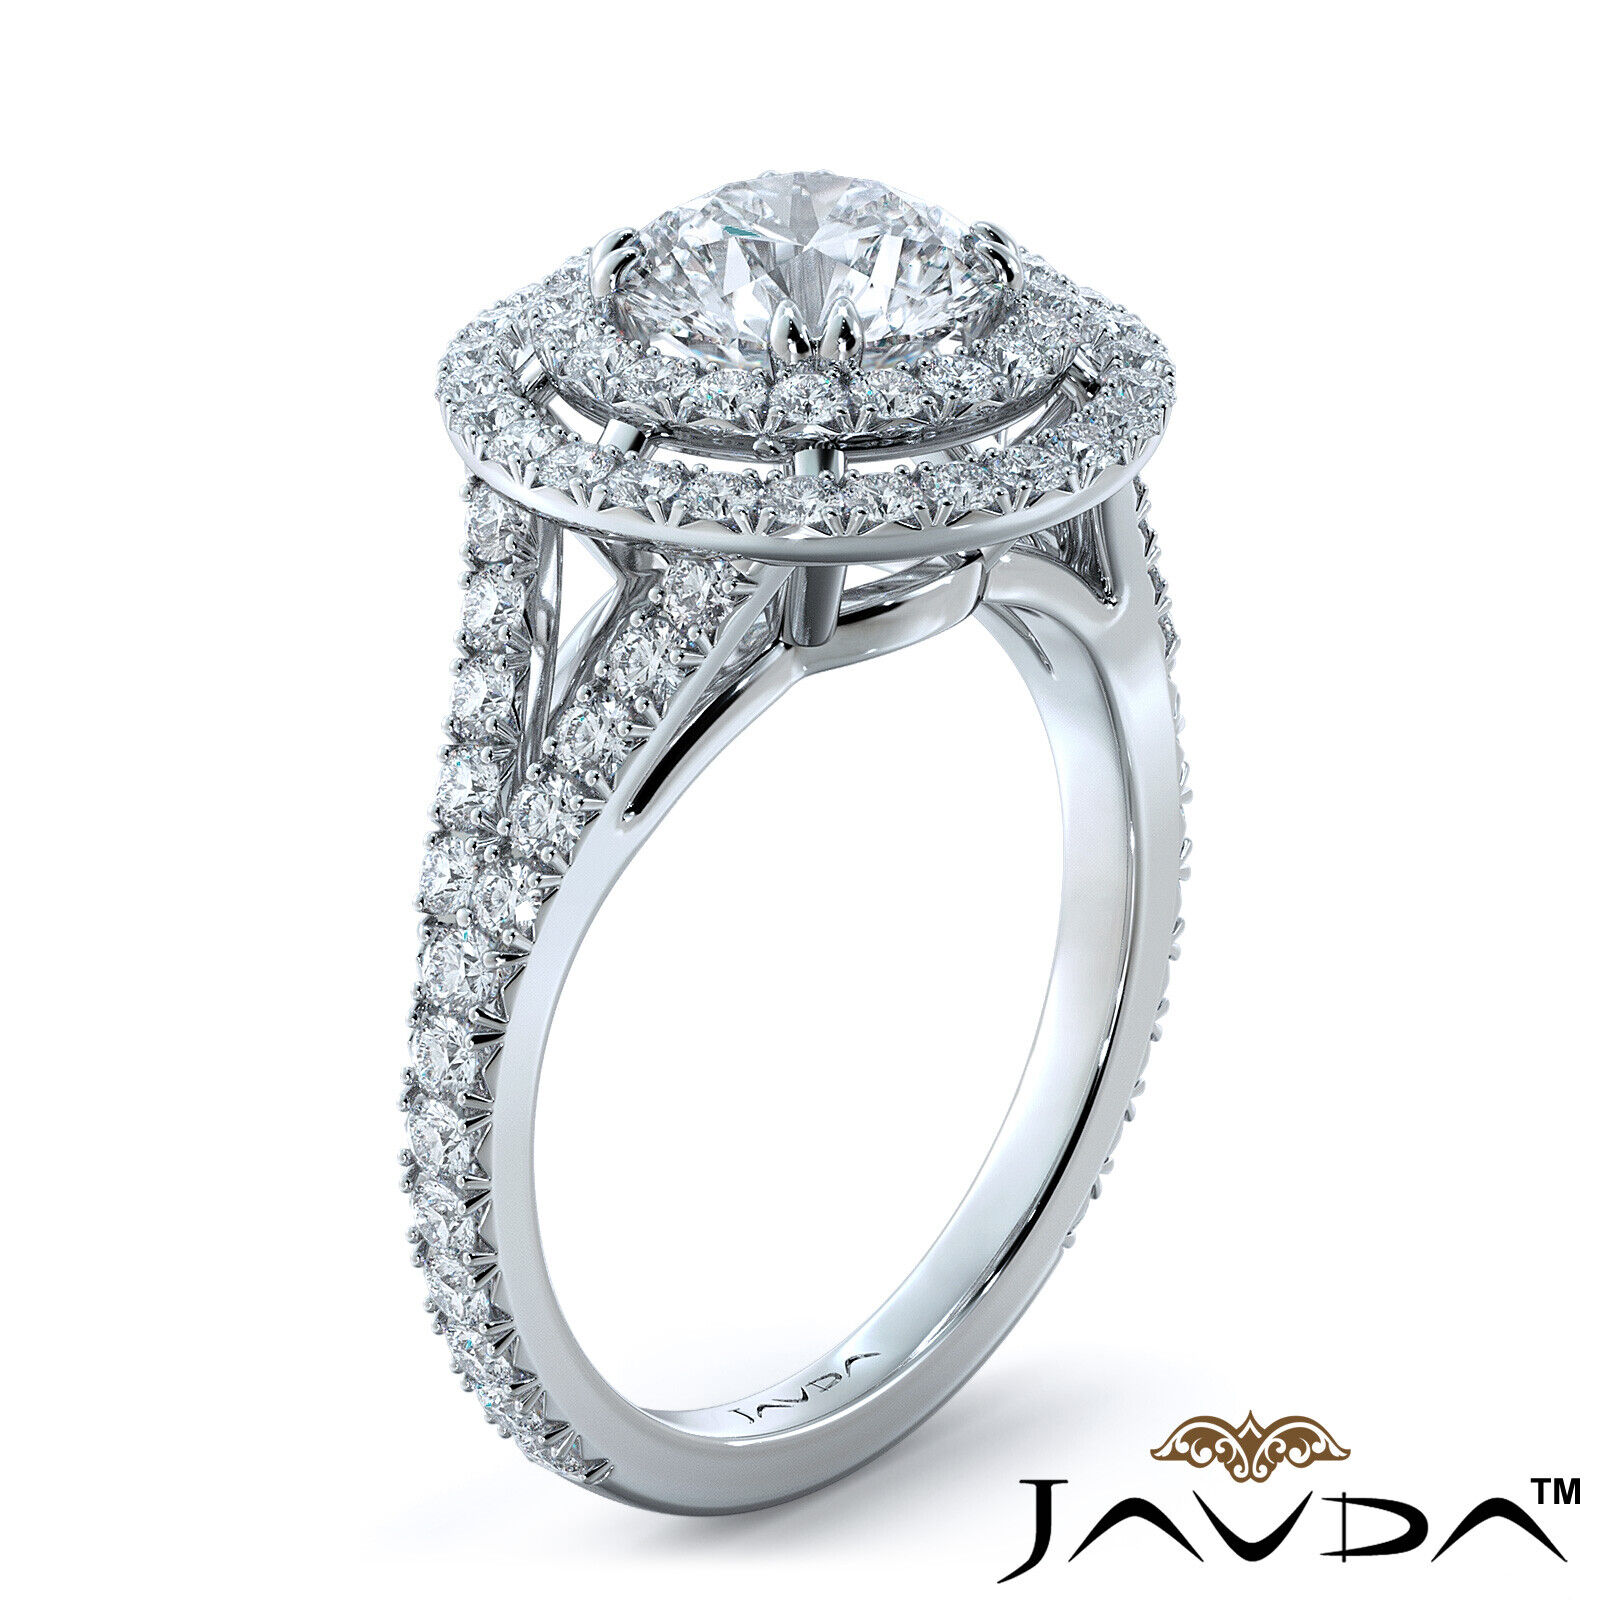 2.05ct French Pave Gala Halo Round Diamond Engagement Ring GIA F-VVS1 White Gold 1